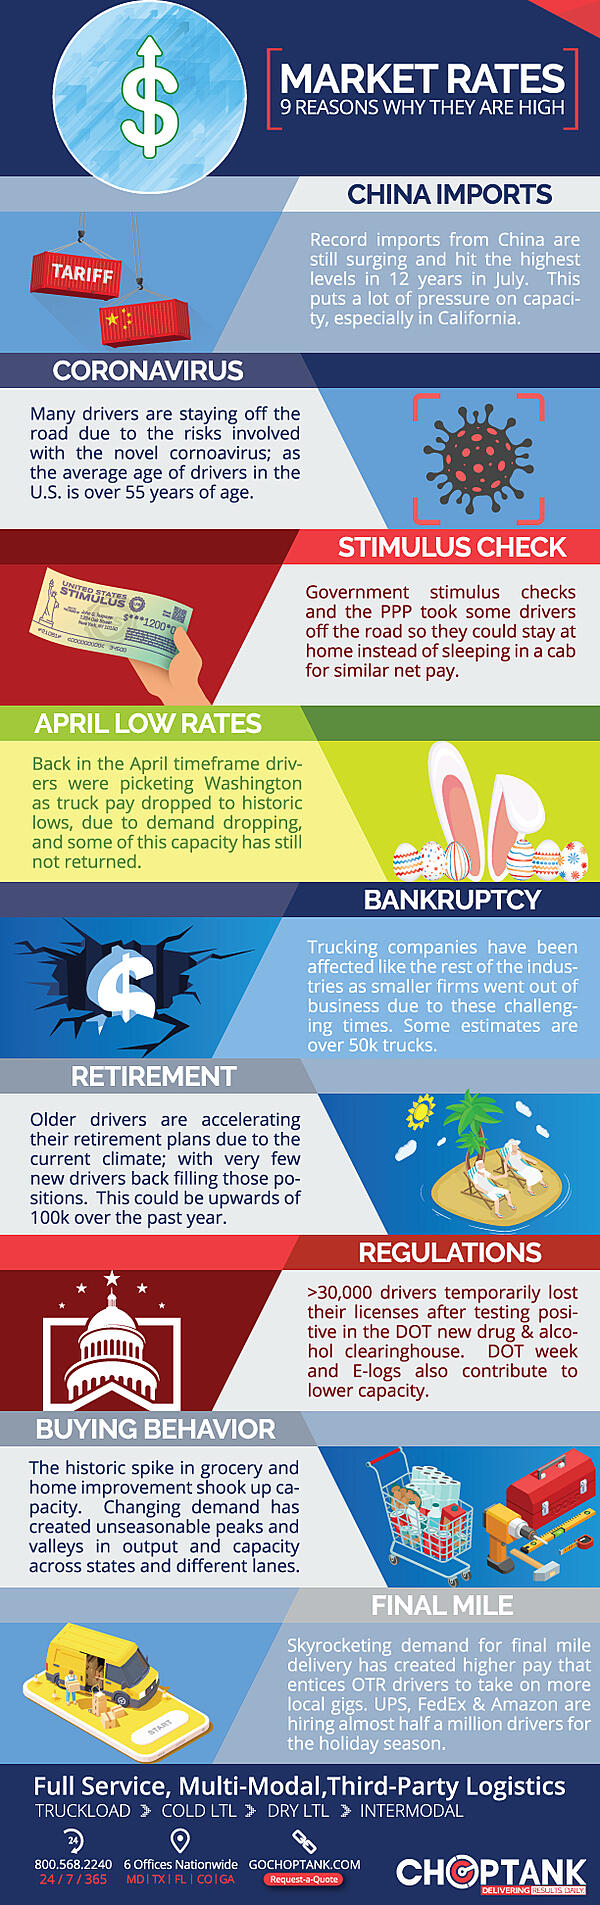 Current-Market-Rates-Infographic